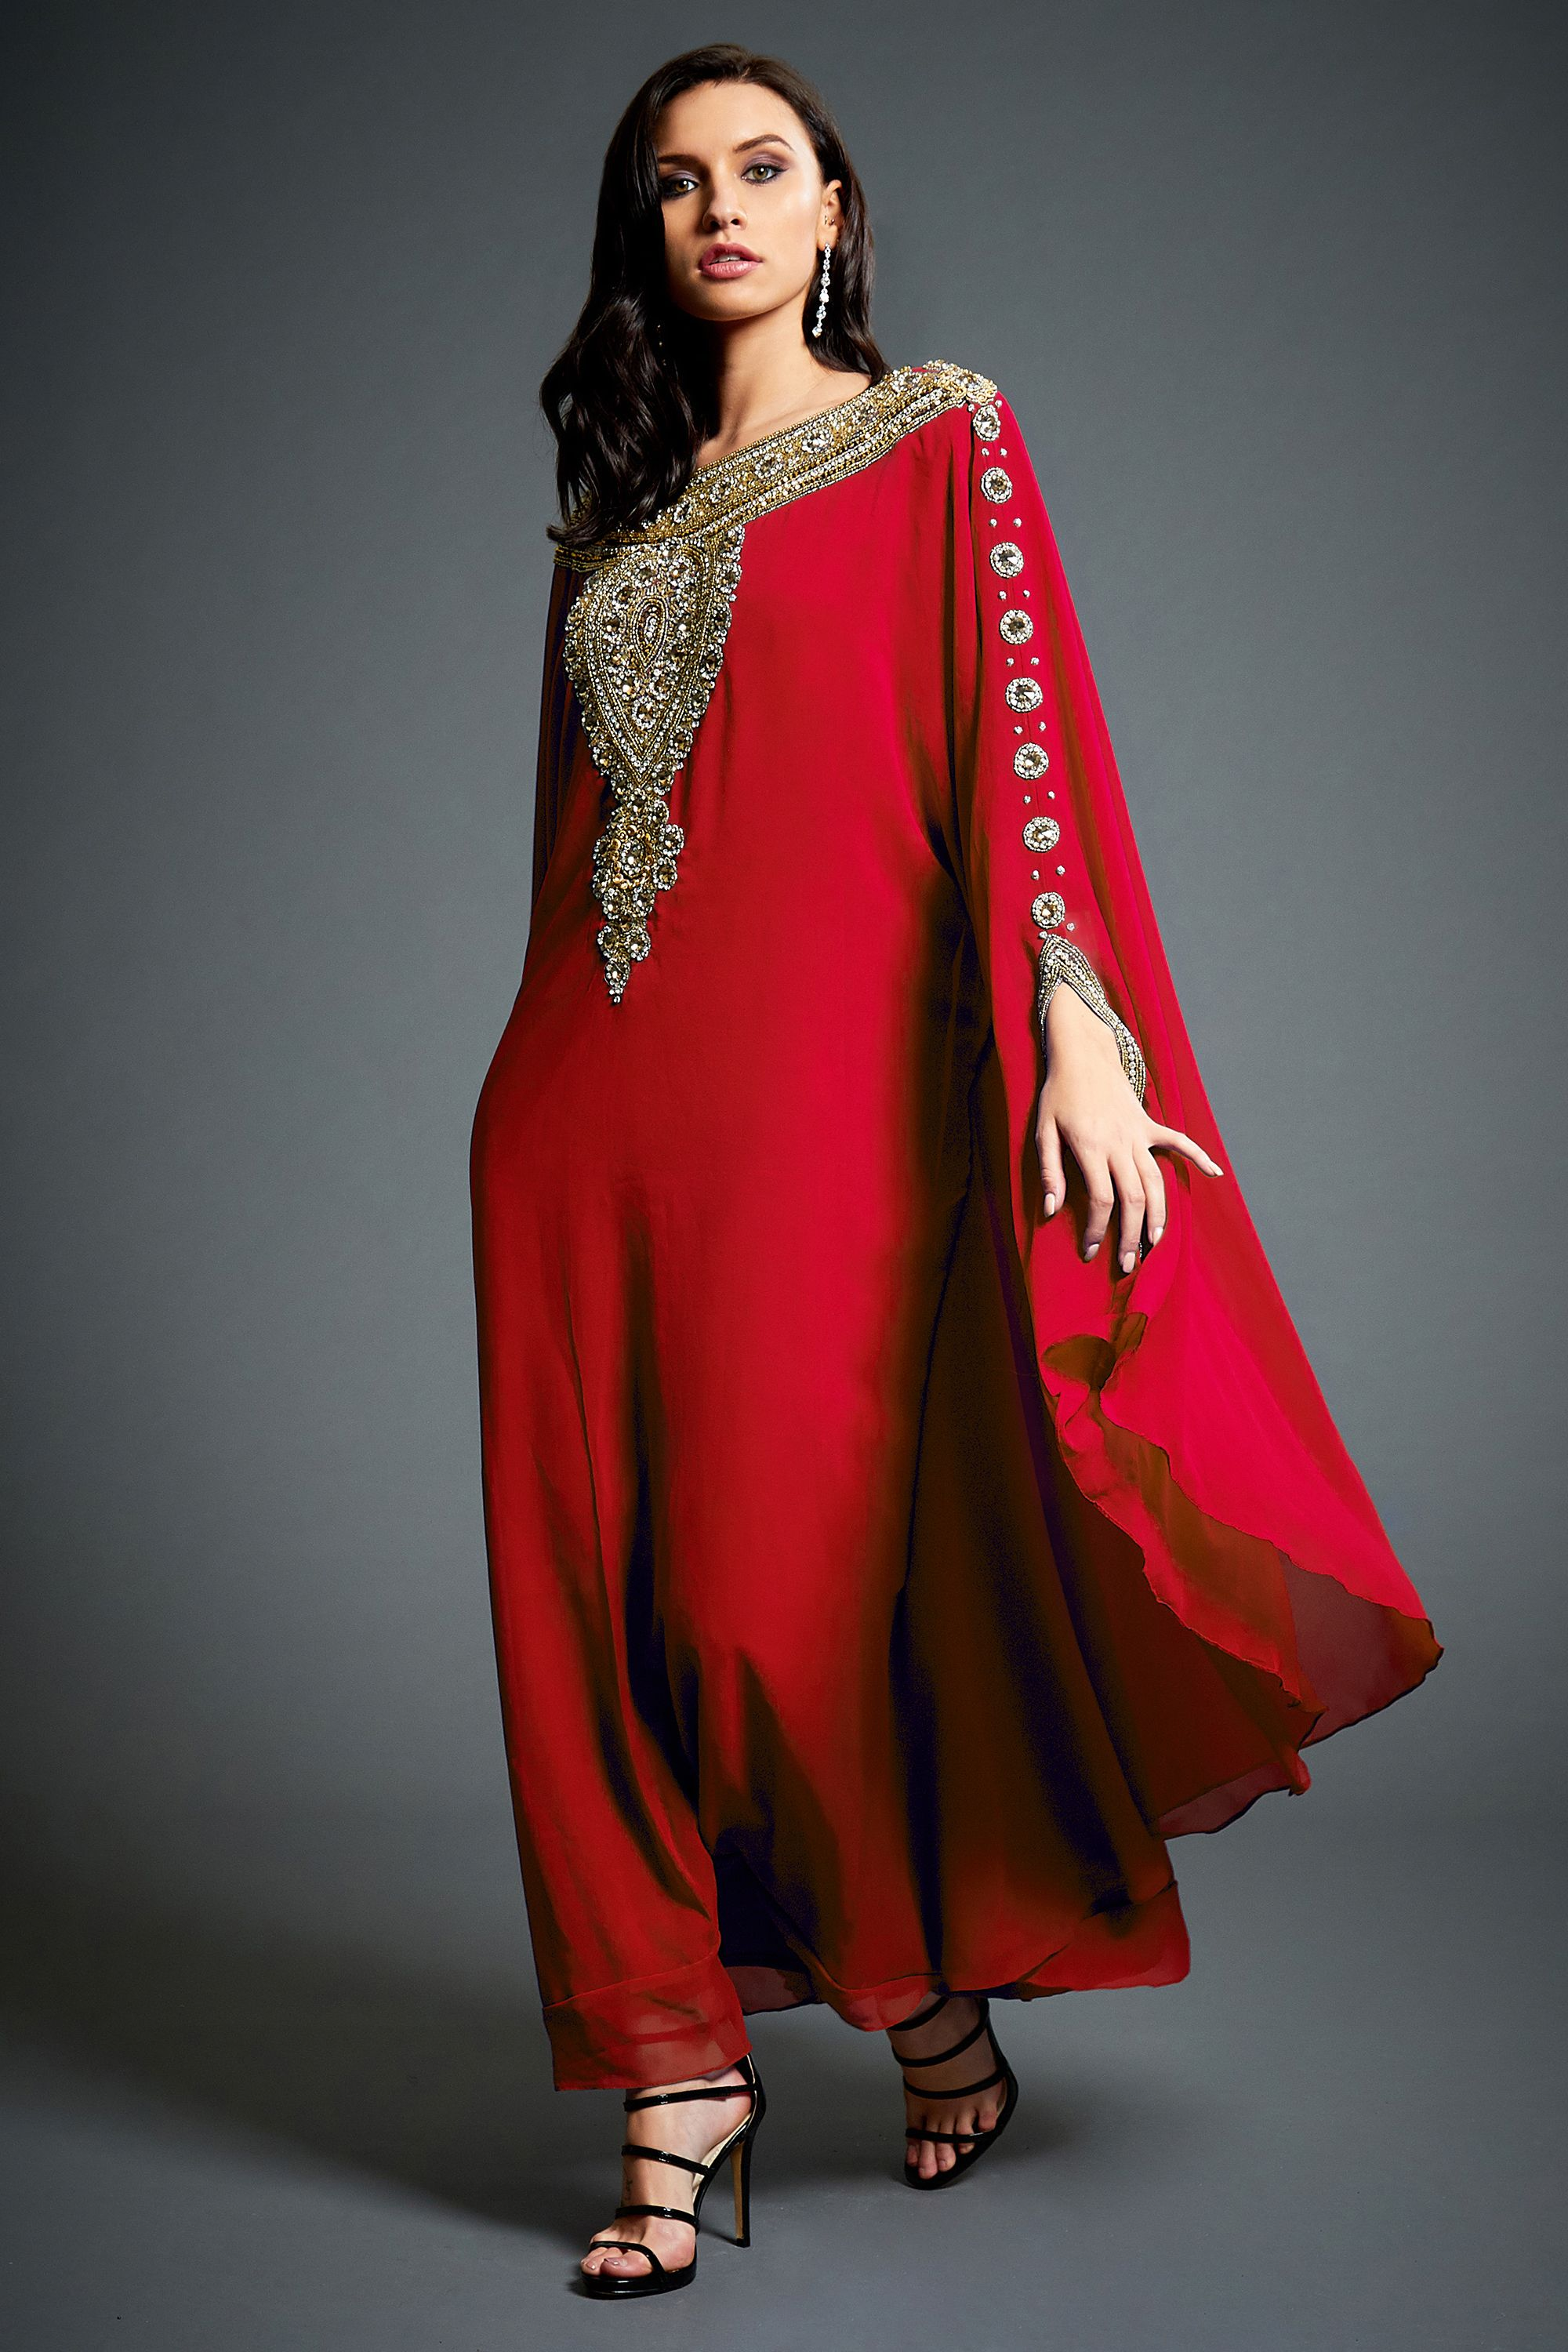 87e573bb7427 Layla Abaya Caftan, Gold Embellished Kaftan Dress, Kaftan Maxi Dress, Dubai  Kaftans, Red Gold Wedding Evening Gown, Plus Size, S-4XL